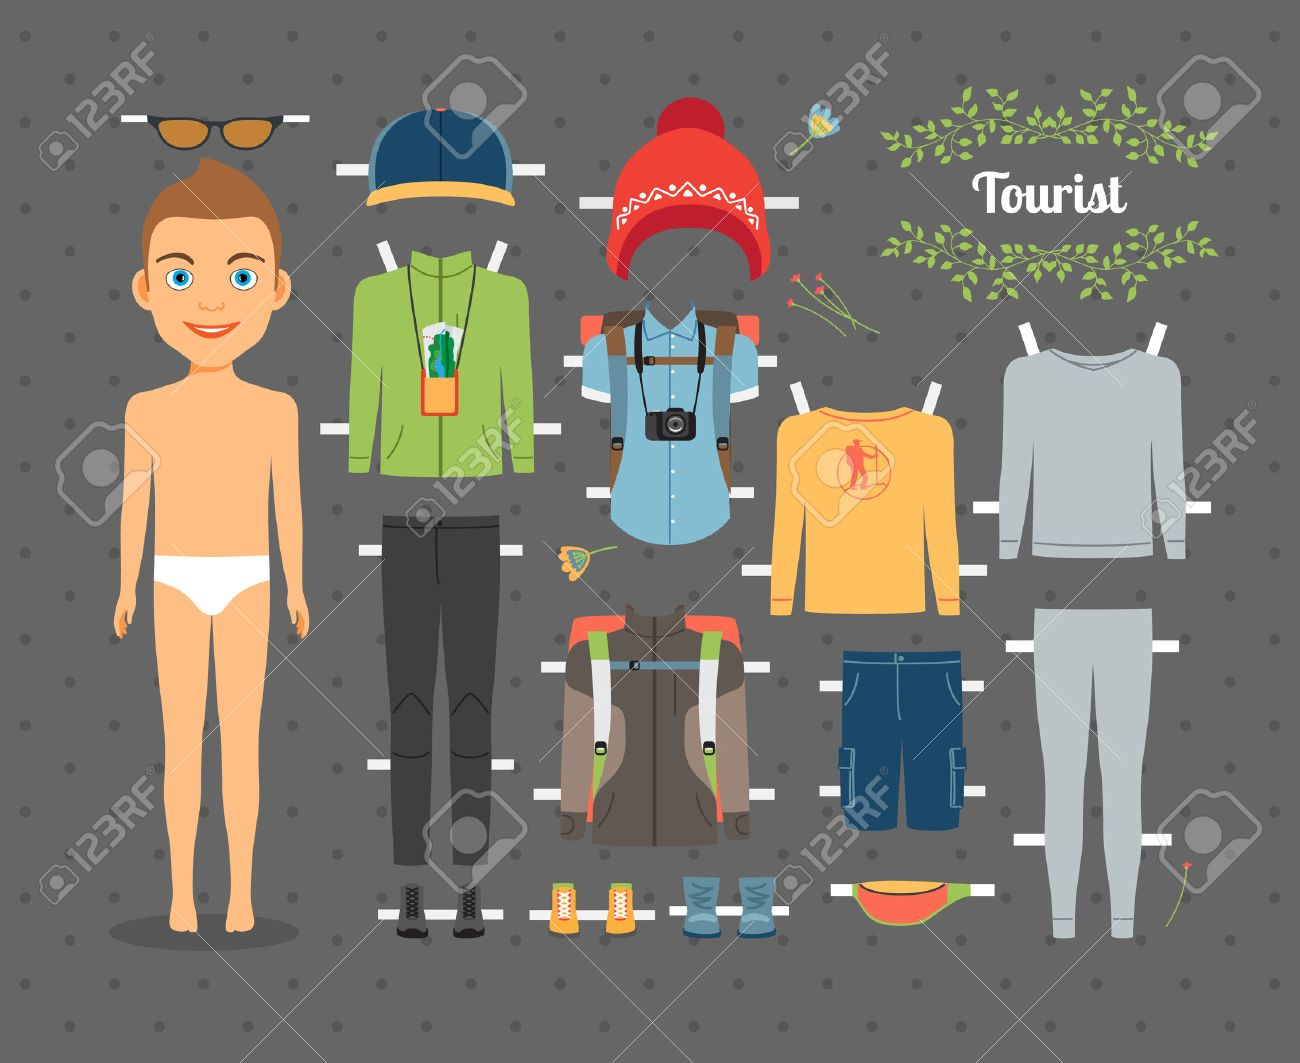 Paper Doll Stock Photos Pictures Royalty Free Paper Doll Images 34568118  Tourist Boy Paper Doll With